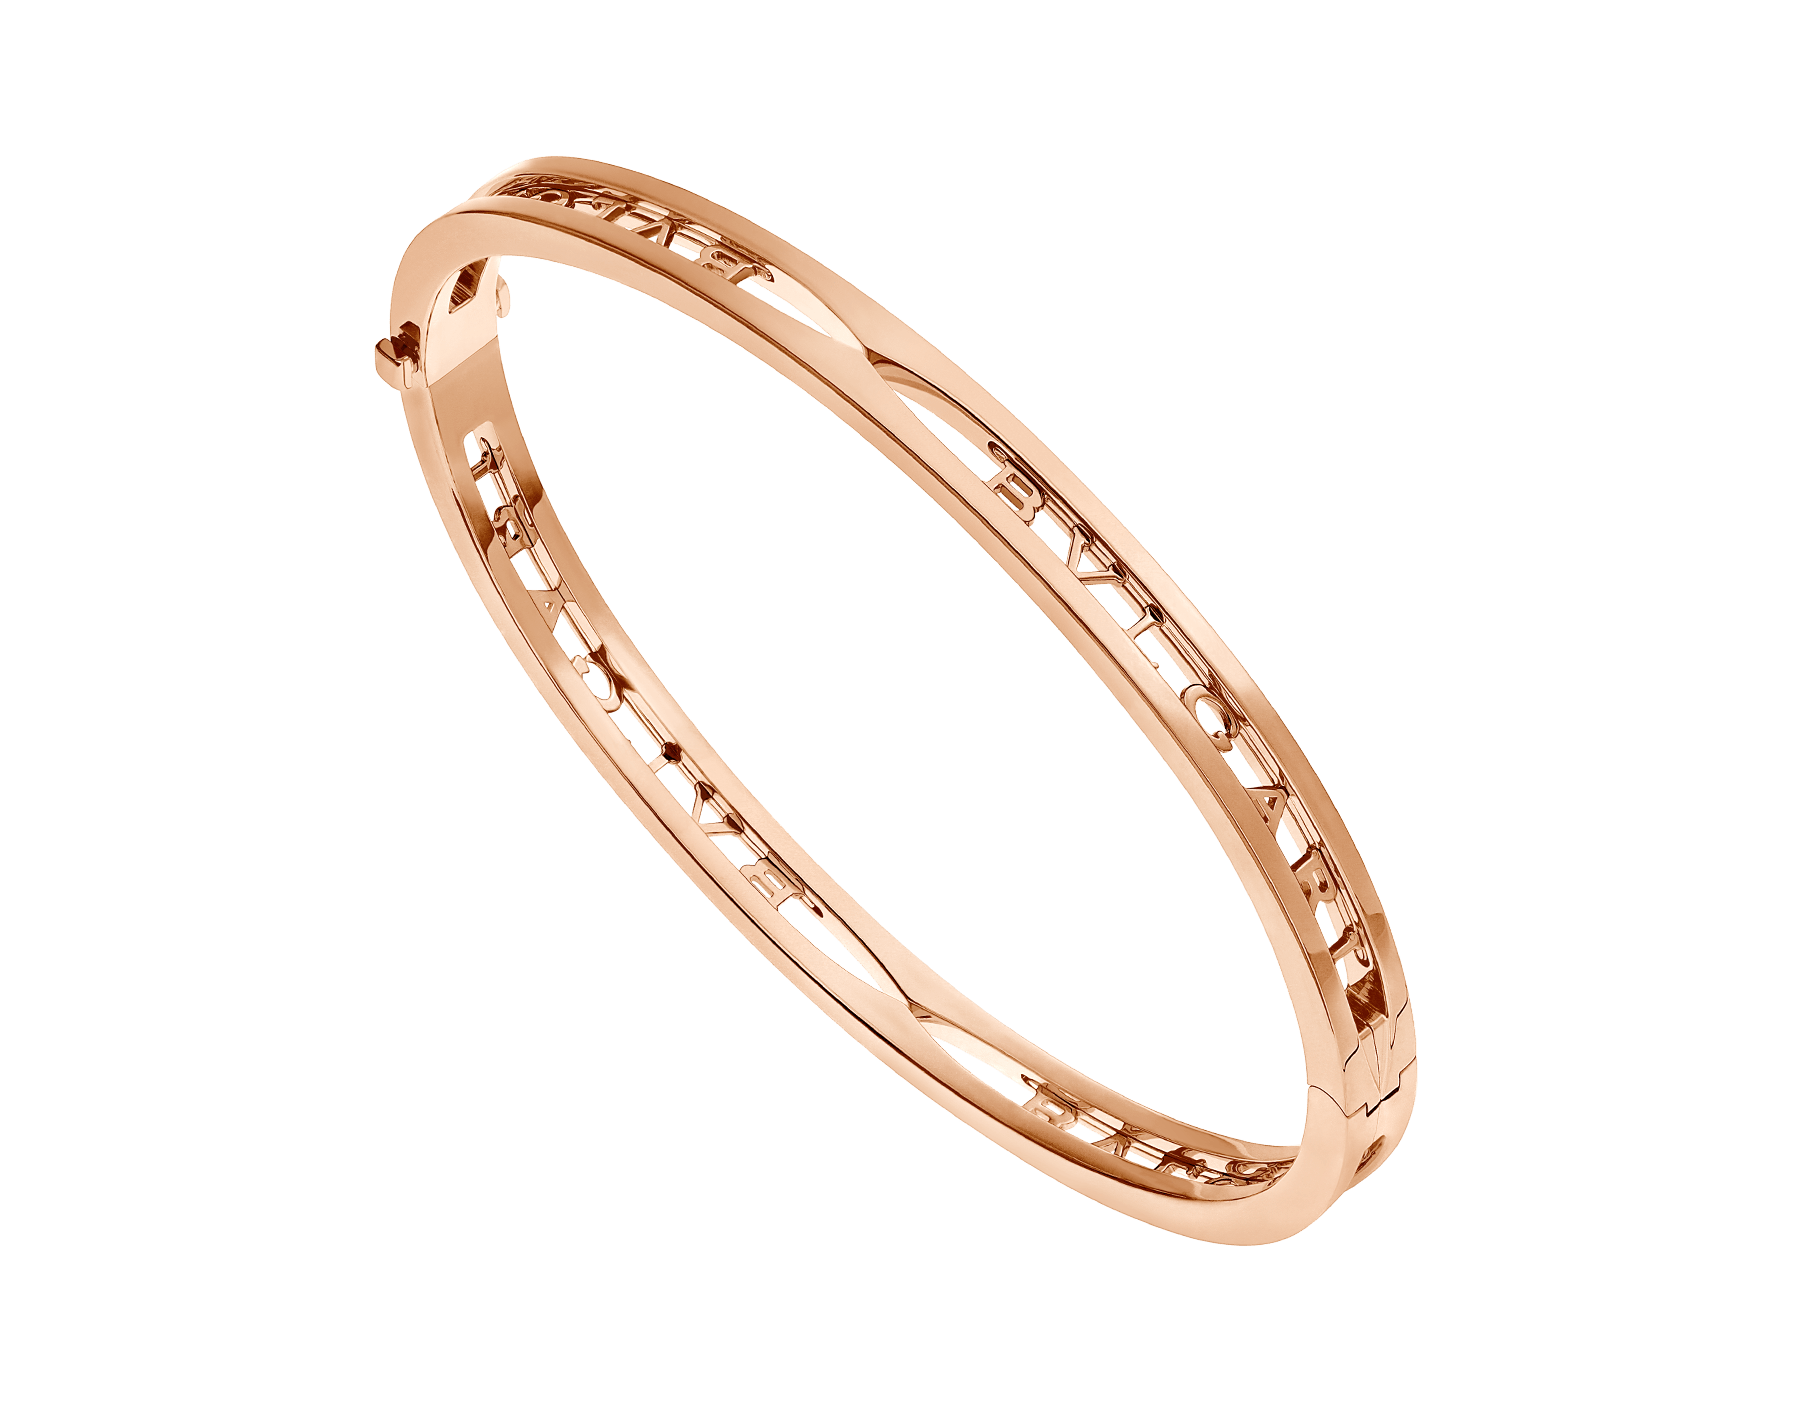 B.zero1 18 kt rose gold bangle bracelet with BVLGARI logo on the spiral BR858669 image 1